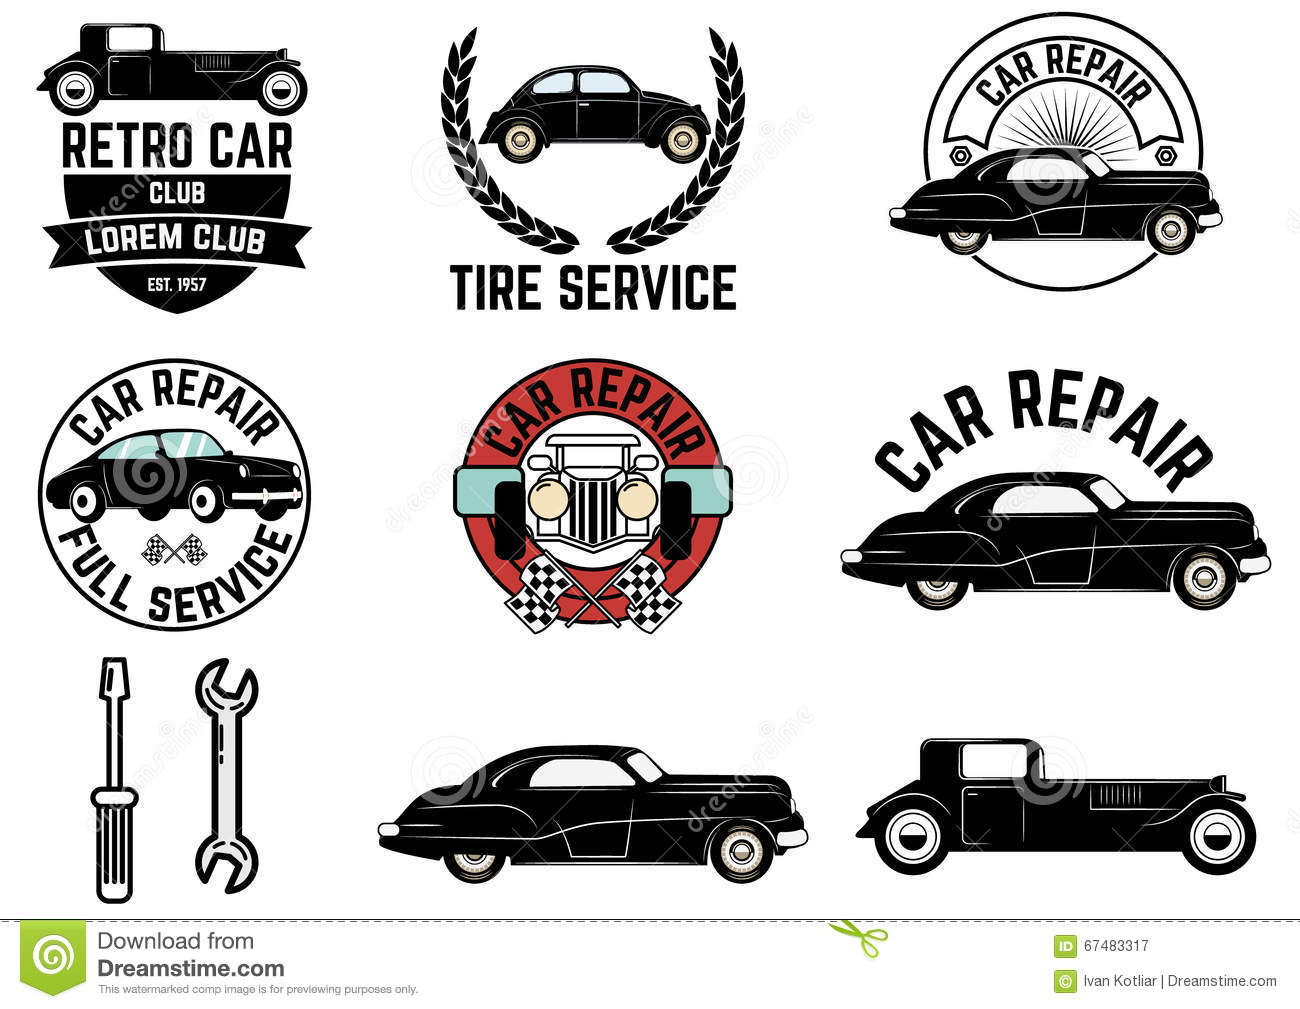 Willys Mb furthermore Mbbkawasaki Bk117 furthermore Car Automobile Types Black Vector Icons Isolated On White Background Hatchback And Roadster Cabriolet And Minivan Illustration 475758898 additionally Chevrolet Impala 1960 as well Claim. on roadster car illustration